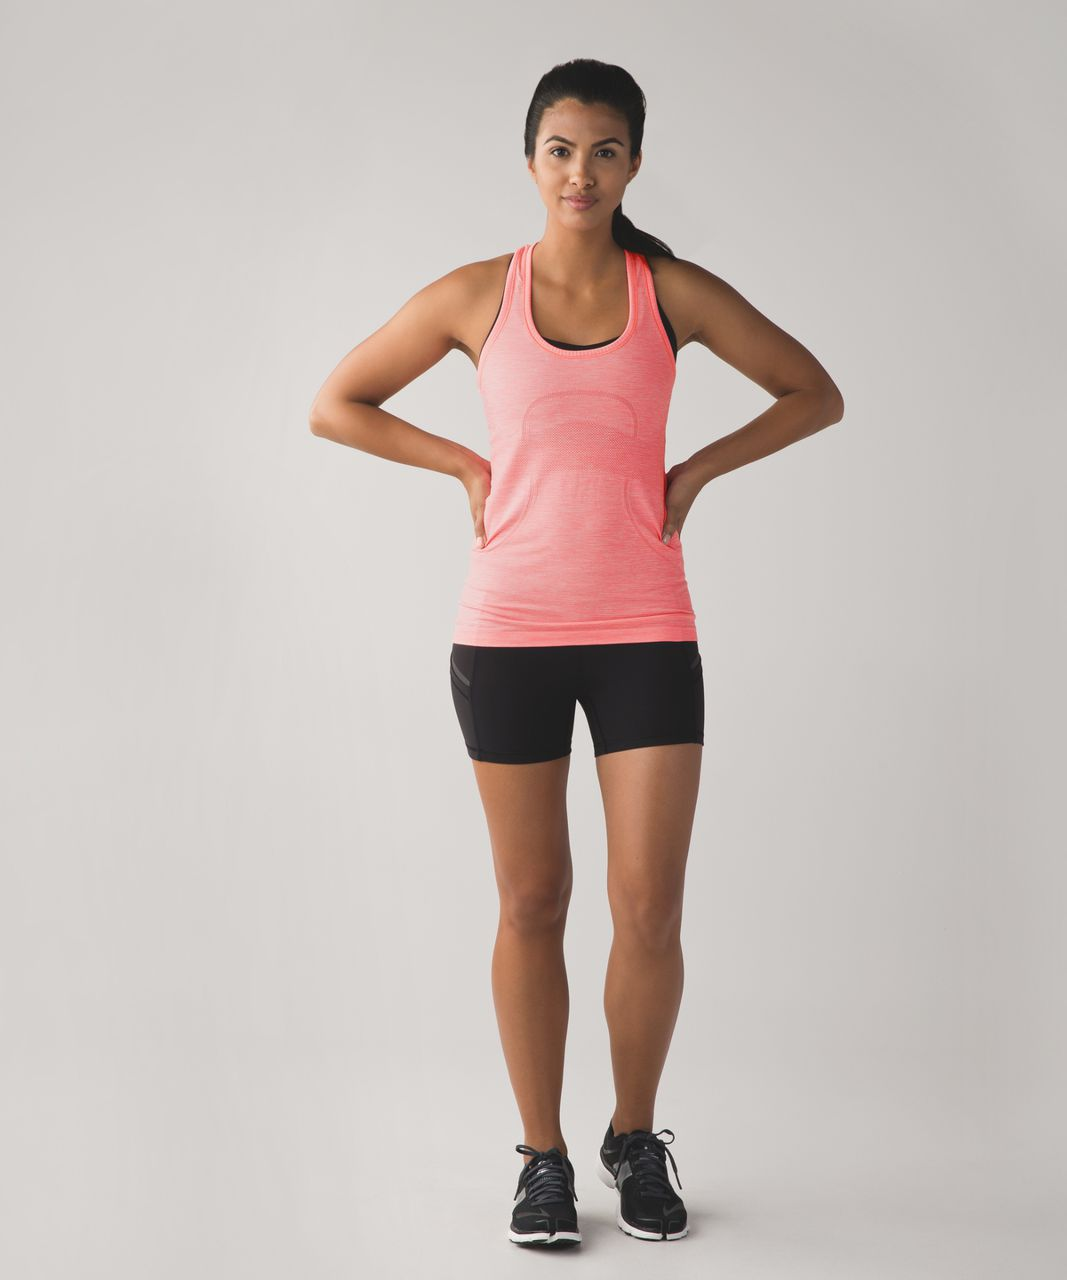 Lululemon Swiftly Tech Racerback - Heathered Flash Light